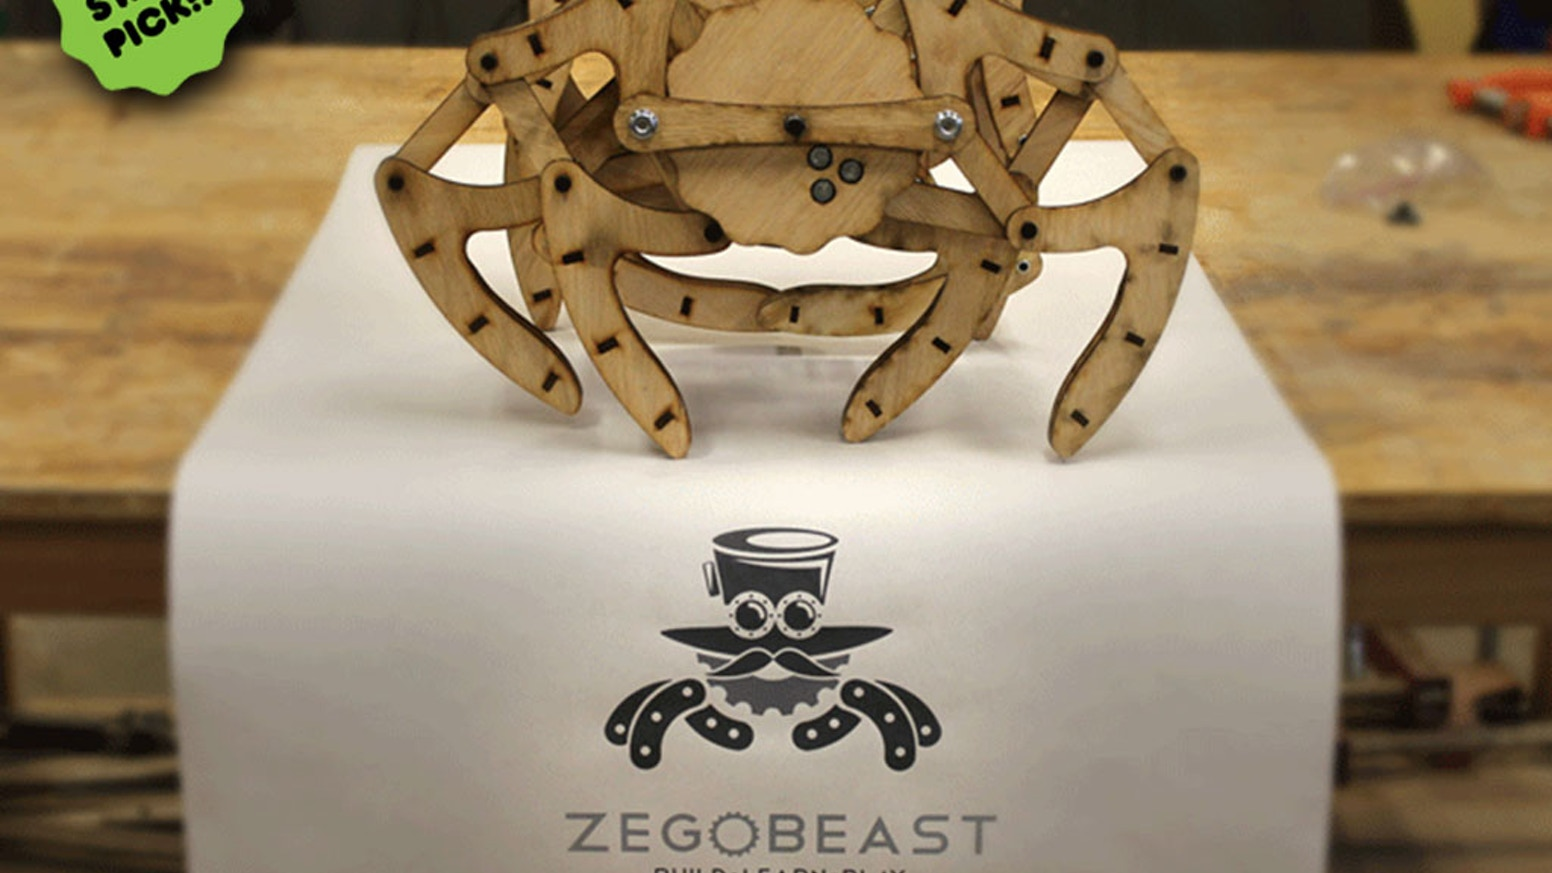 ZeGoBeasts are biologically-inspired mechanical walking creatures that teach you about basic kinematics and are awesome to build.